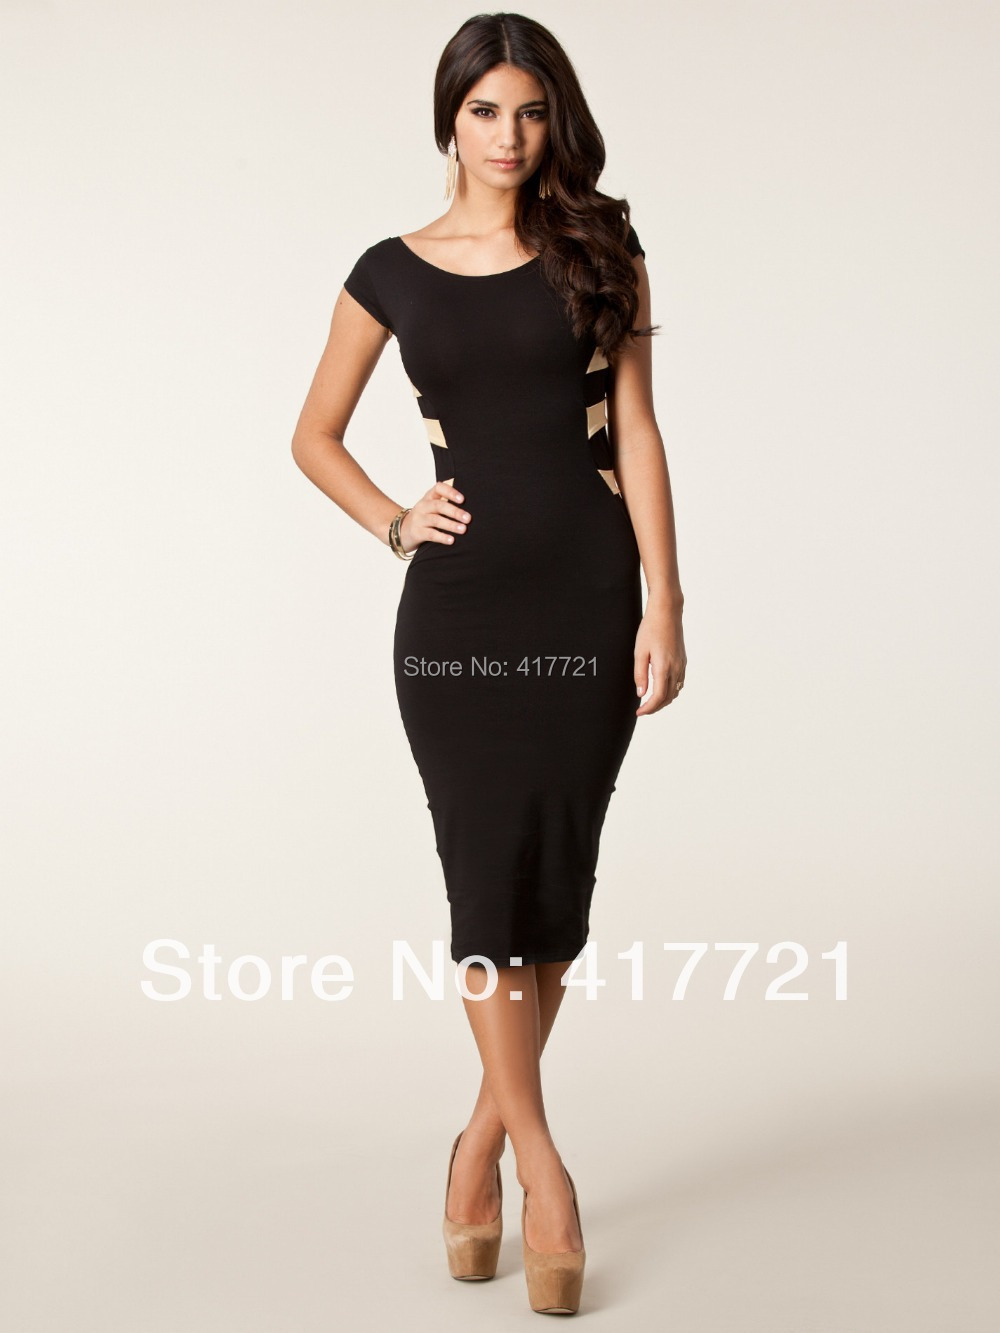 Aliexpress.com : Buy Size M/L New Lady Career Office Sexy Fashion ...